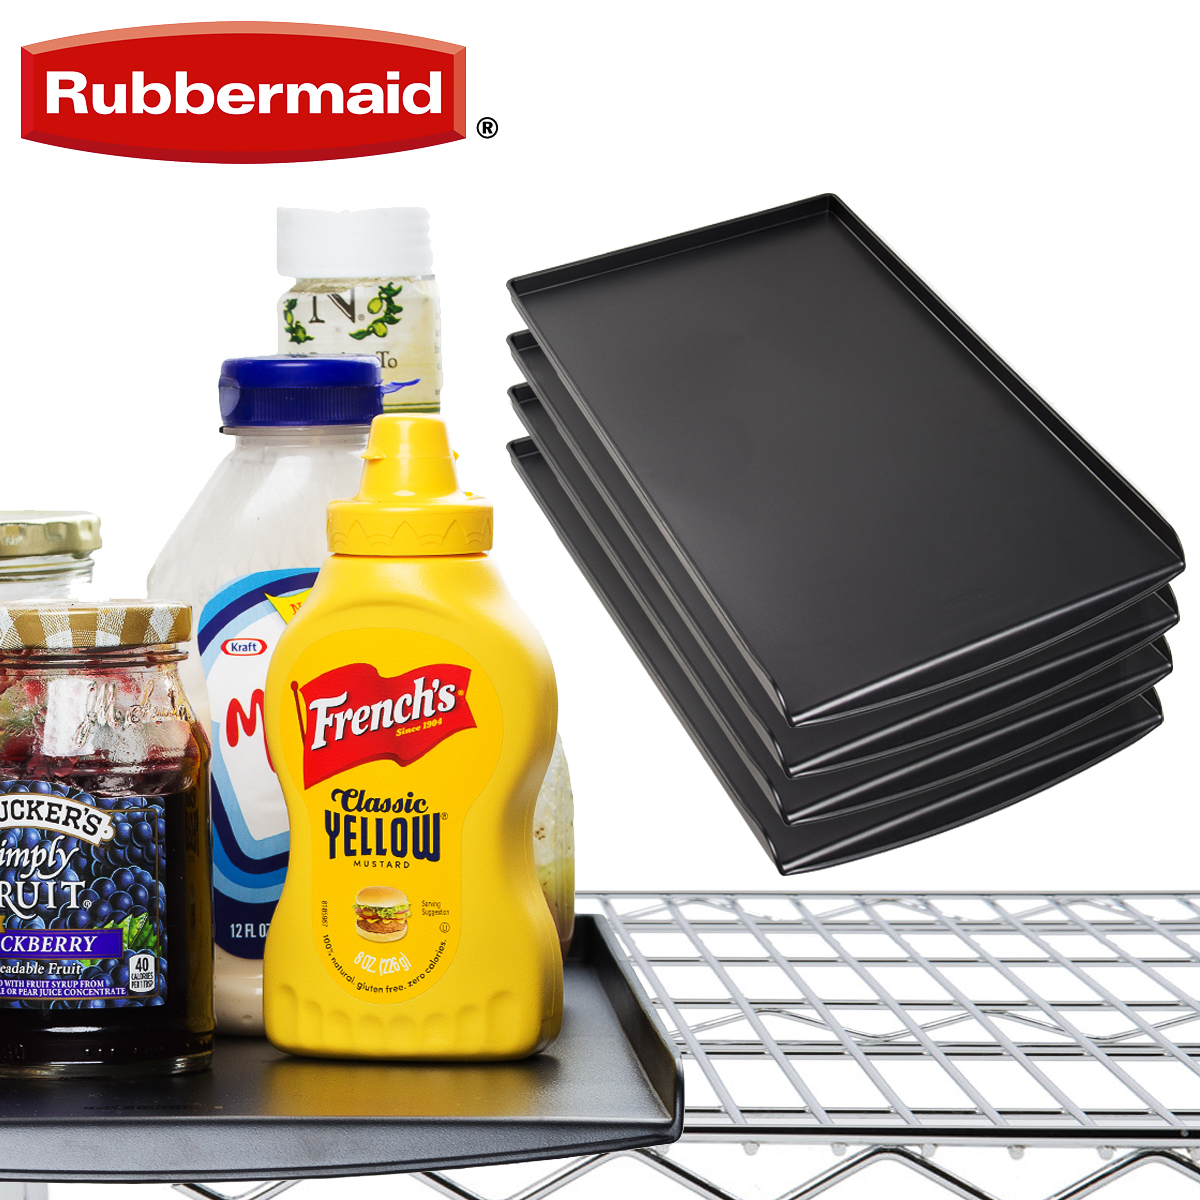 4 Rubbermaid Black Kitchen Pantry Or Cabinet Organization Trays For